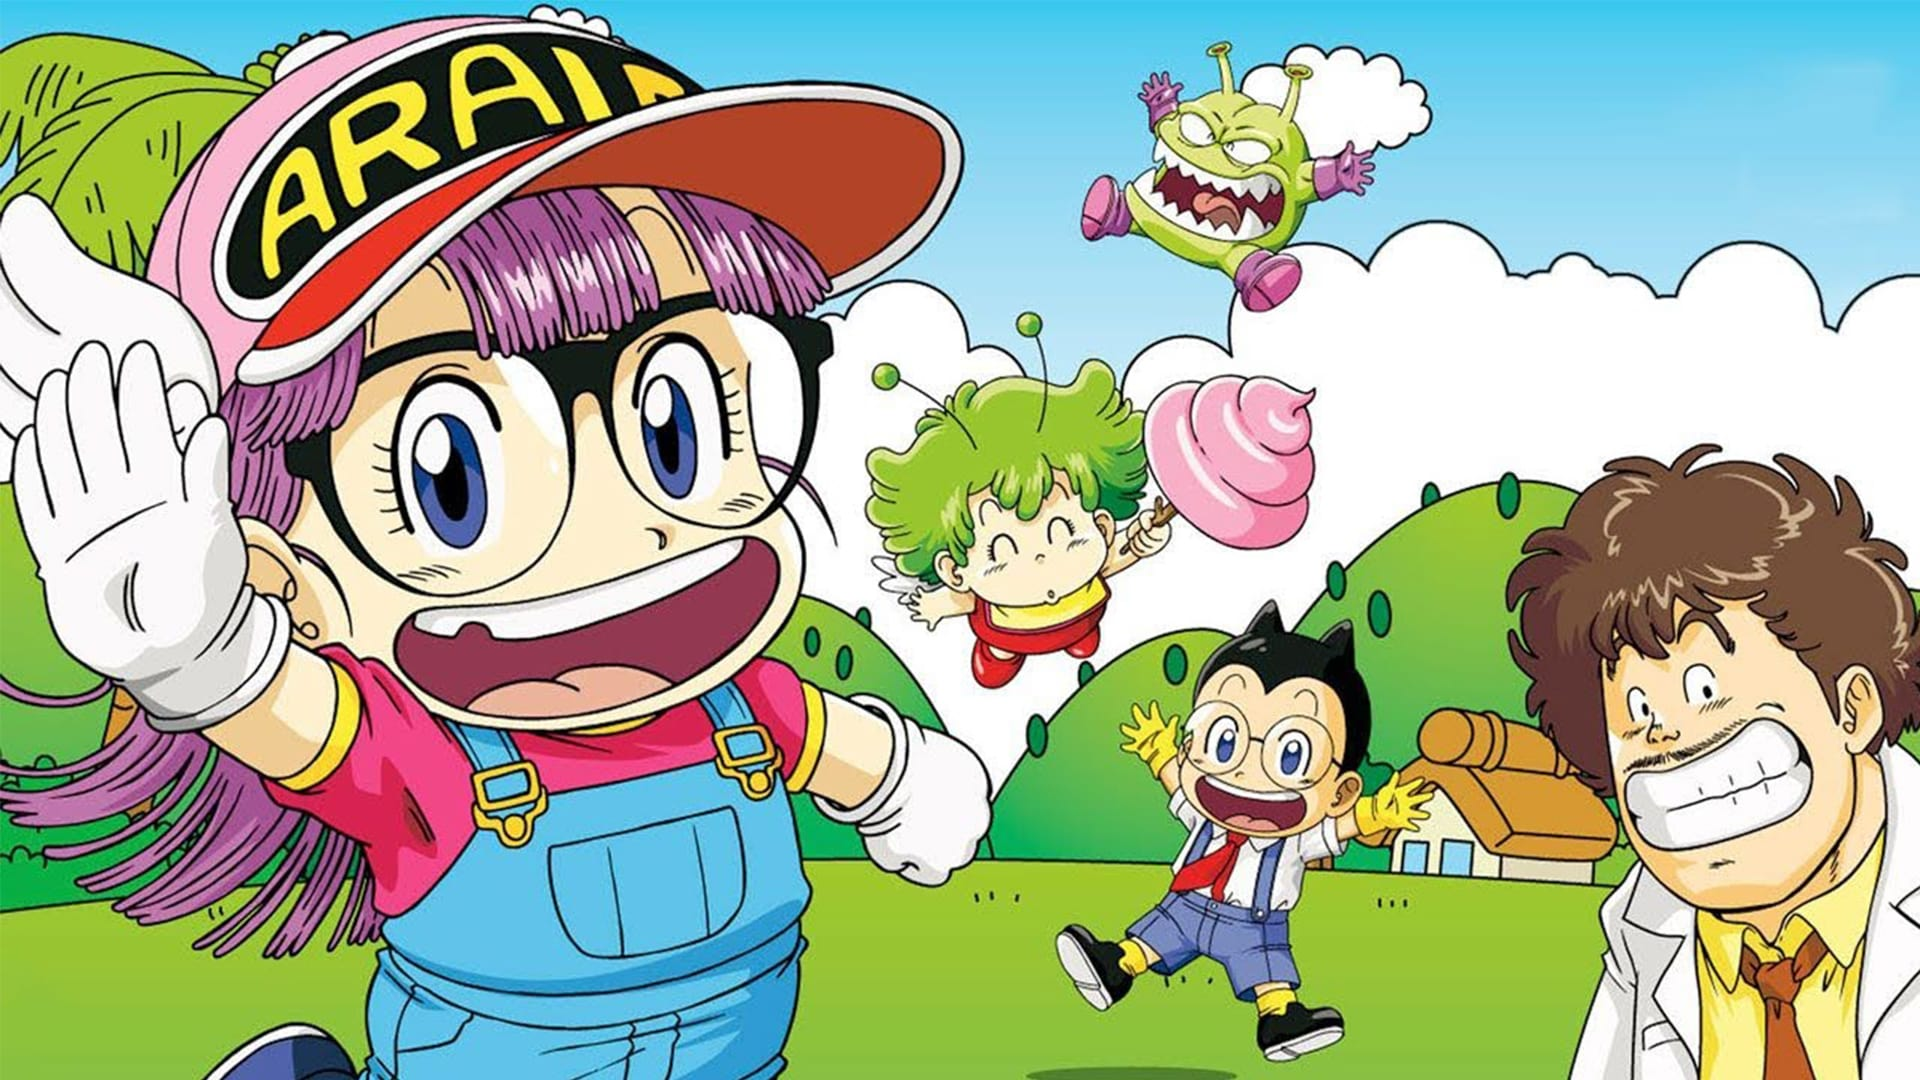 Dr. Slump Is Finally Available to Stream - Where to Watch